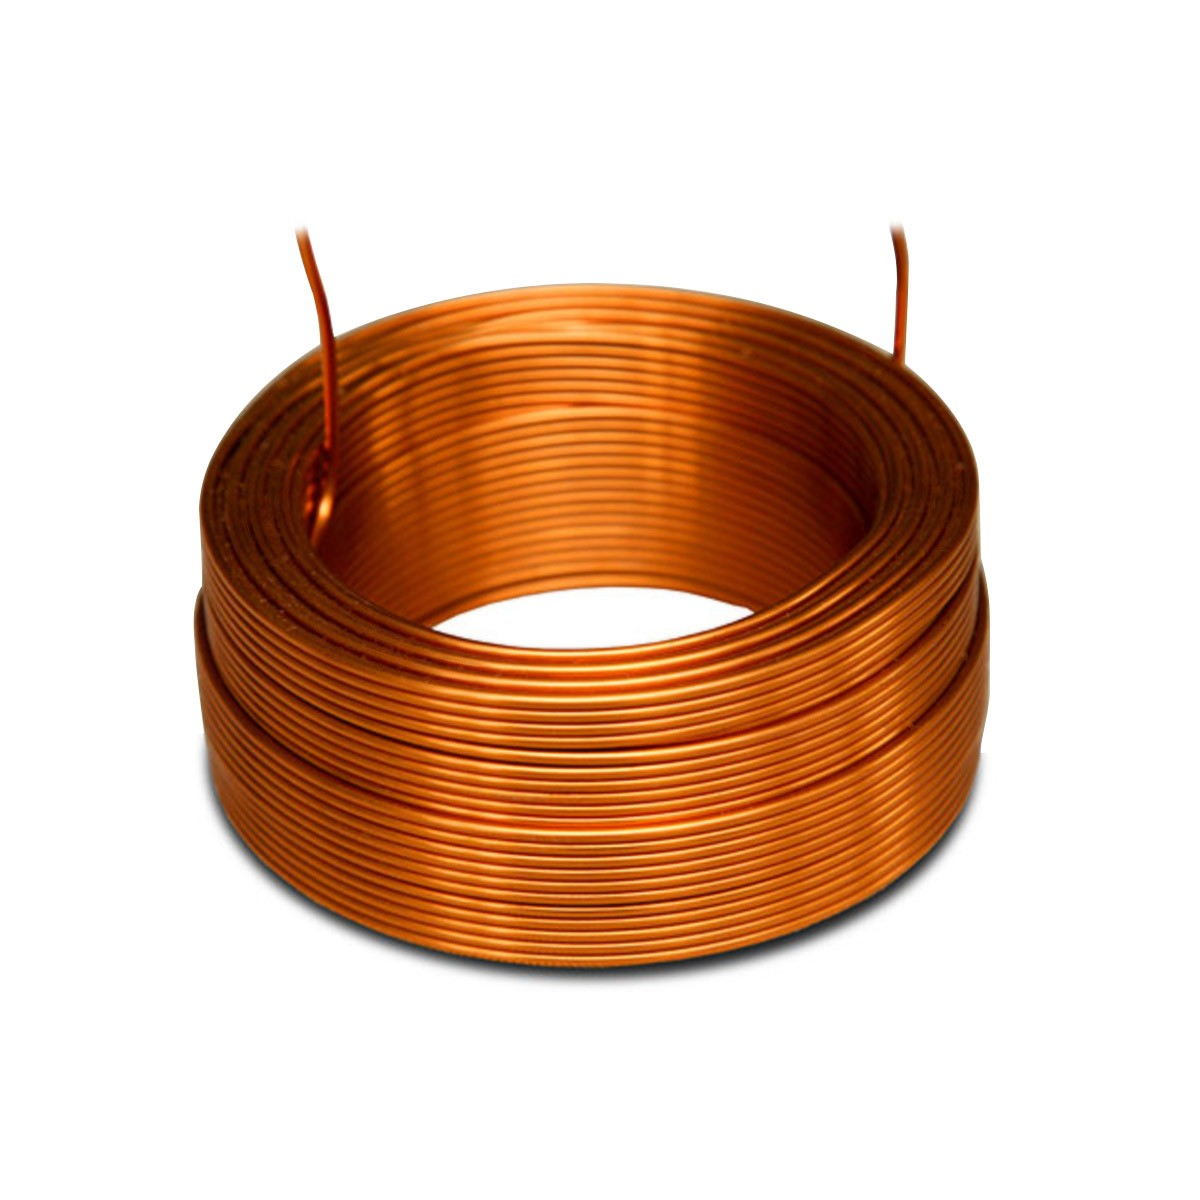 Copper Wiring on copper enclosures, copper connectors, copper doors, copper ground wire, copper wire loop, copper trim, copper fasteners, copper building, copper electrical wire, copper hardware, copper appliances, copper coins, copper siding, copper design, copper painting, copper cables, copper sheet metal, copper diagram, copper circuit board, copper socket,